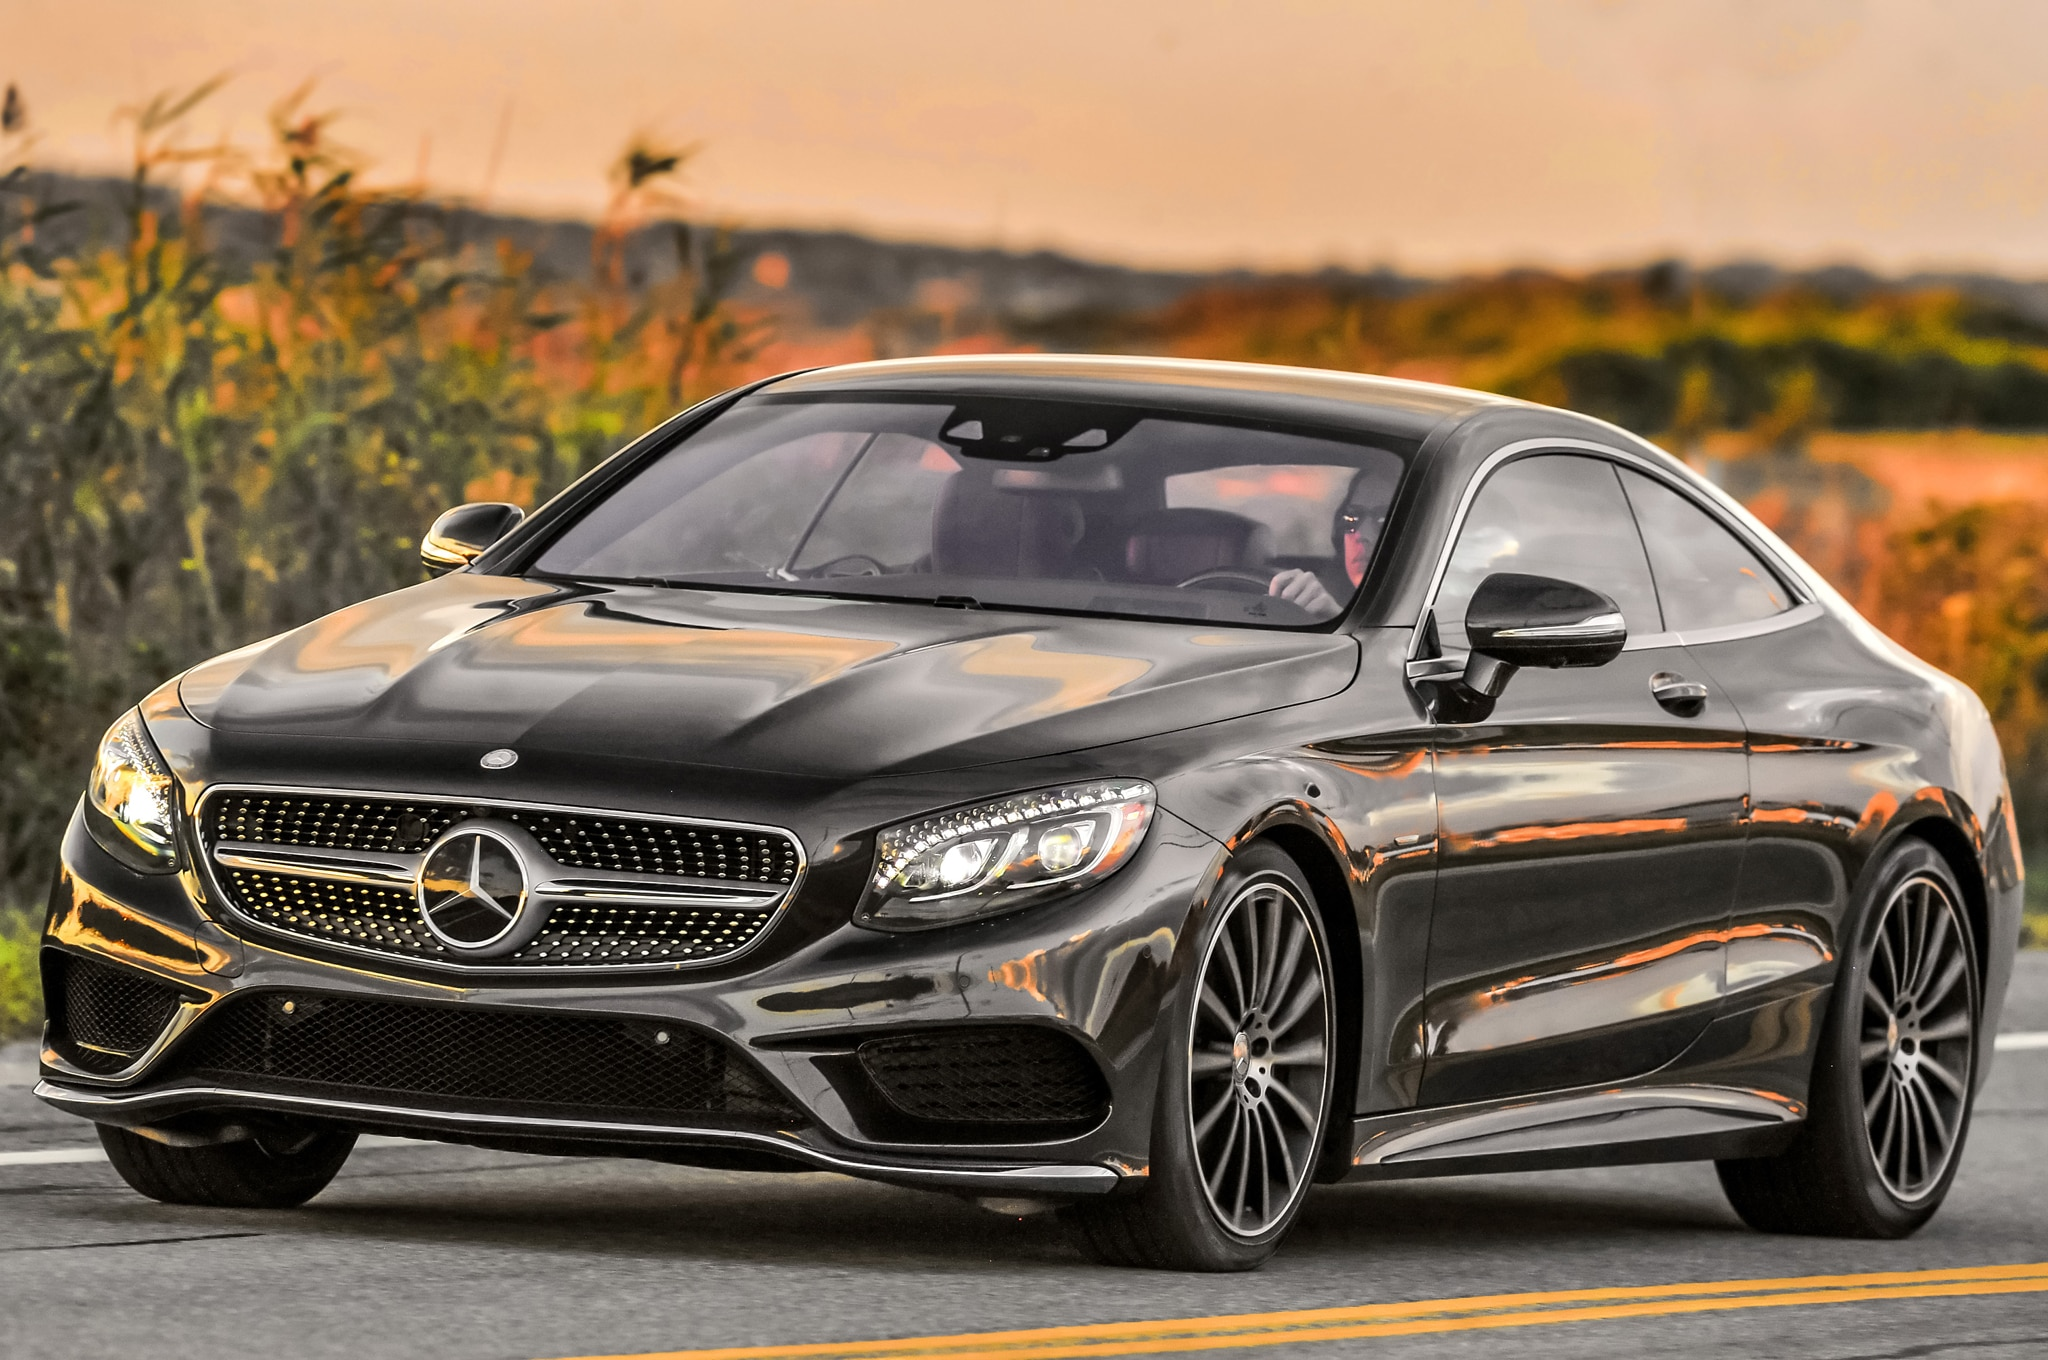 2015 mercedes benz s550 4matic coupe review for Mercedes benz s550 pictures